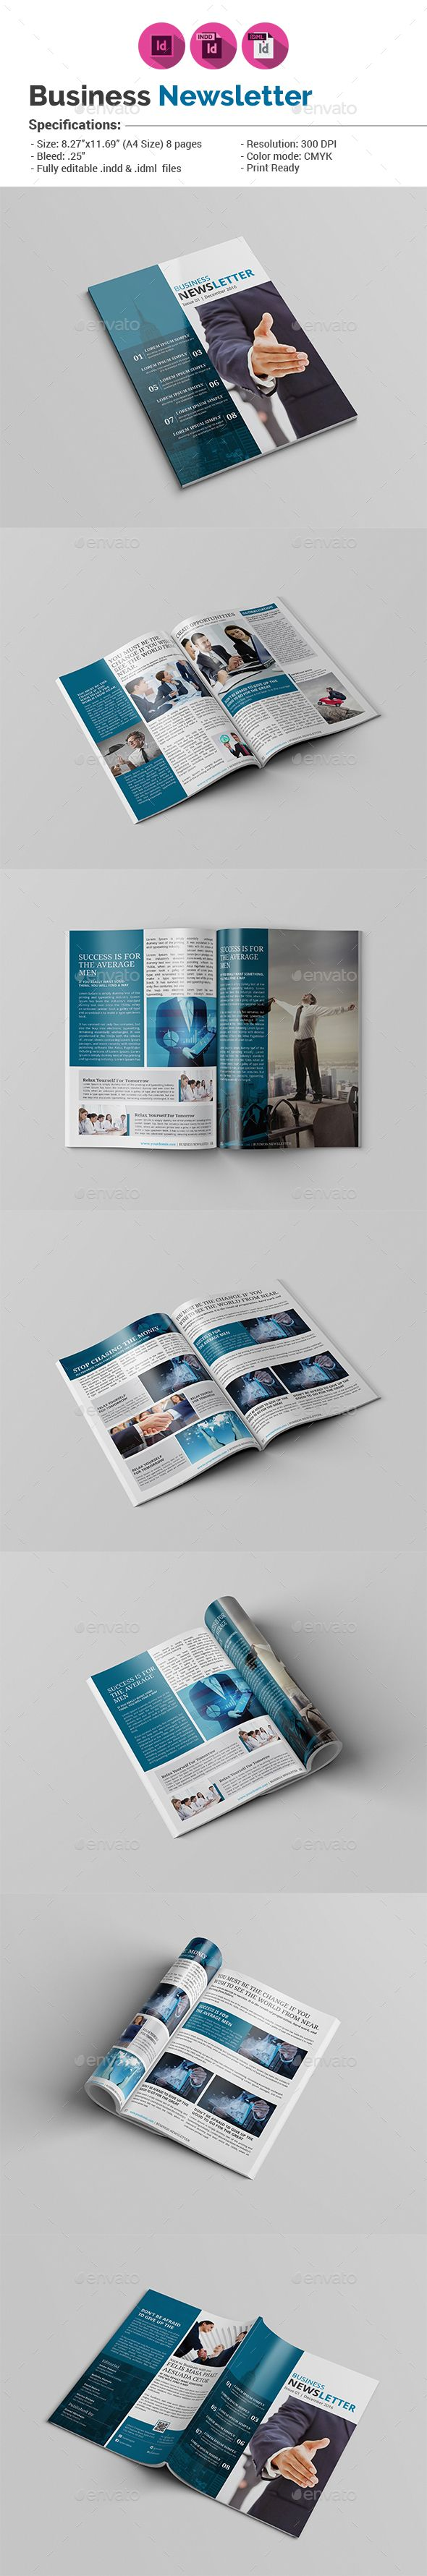 21 best Ads images on Pinterest | Graphics, Editorial design and ...